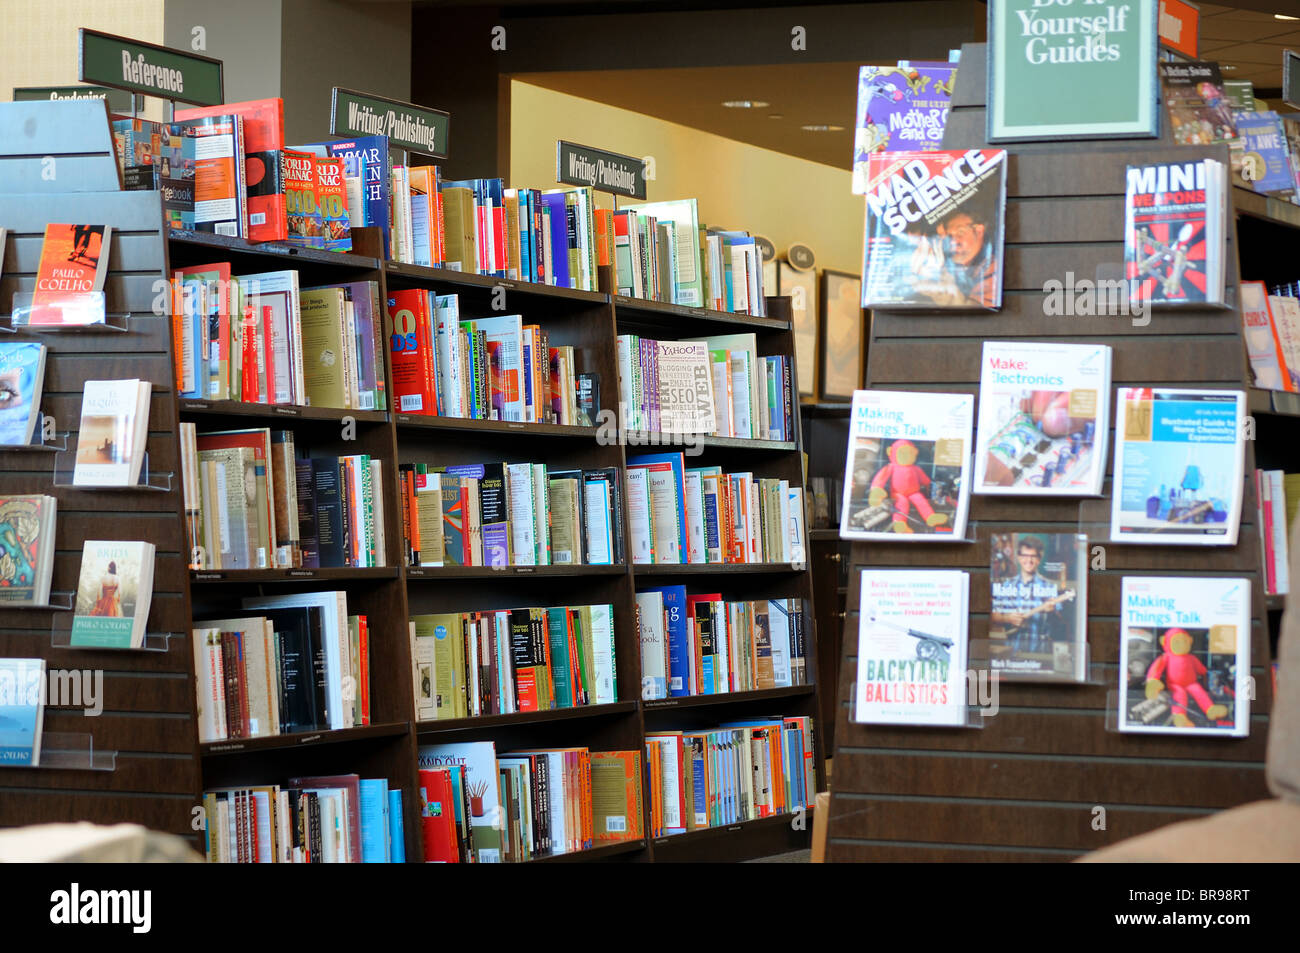 book store interior shelves filled with books for sale at borders stock photo 31551964 alamy. Black Bedroom Furniture Sets. Home Design Ideas